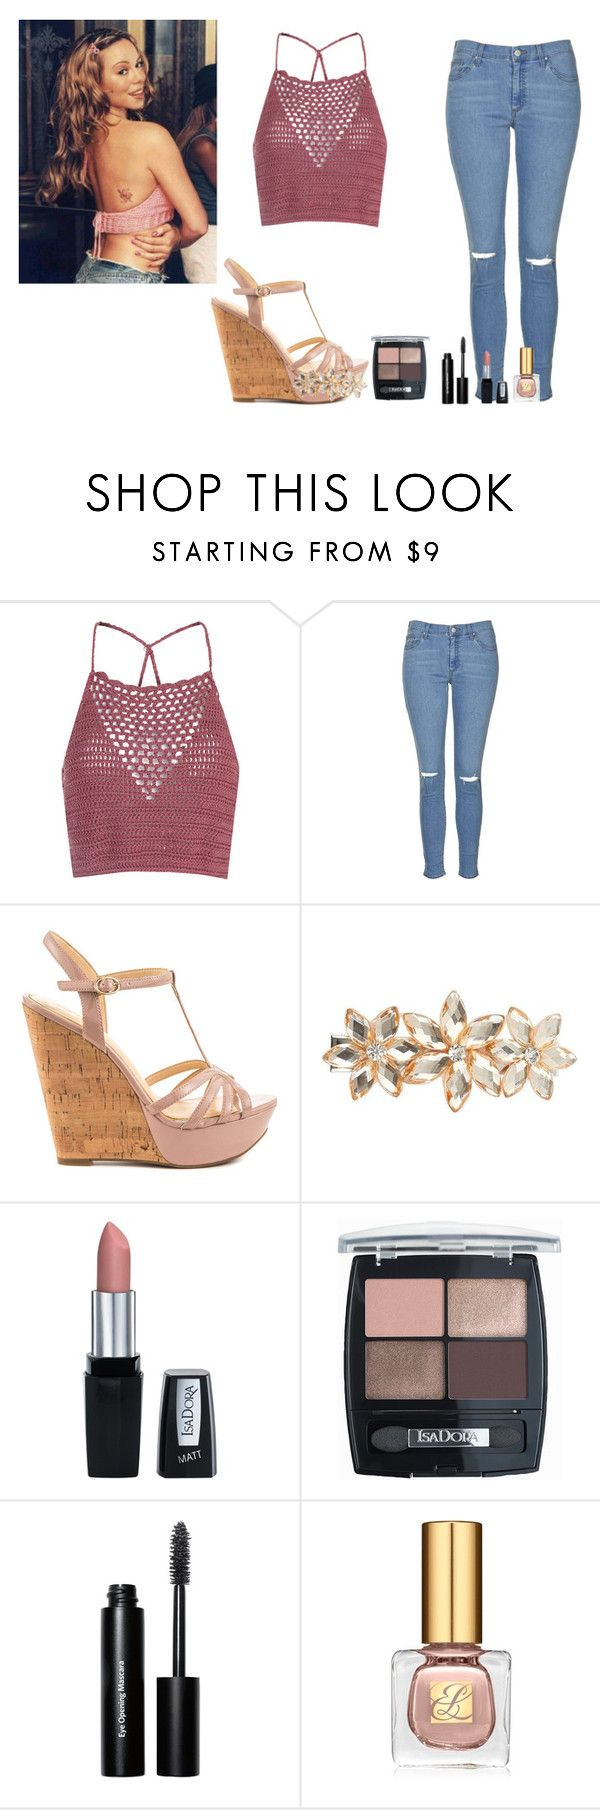 """Mariah Carey Heartbreaker"" by akgsteeler ❤ liked on Polyvore featuring Glamorous, Mariah Carey, Topshop, Jessica Simpson, Dorothy Perkins, Isadora, Bobbi Brown Cosmetics and Estée Lauder"